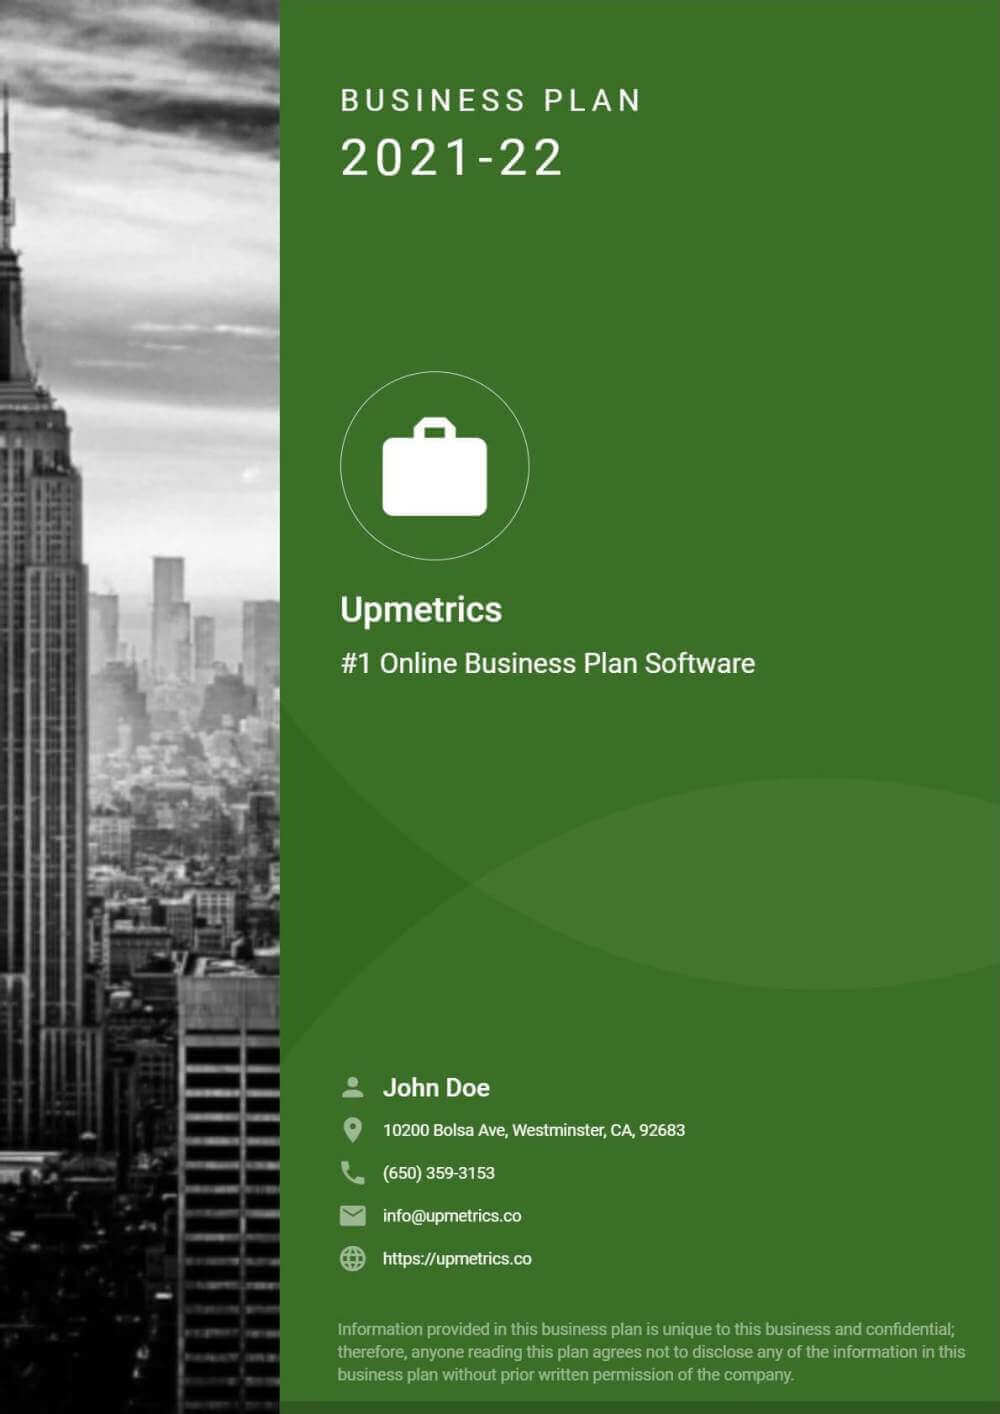 Business Plan Cover Page Design